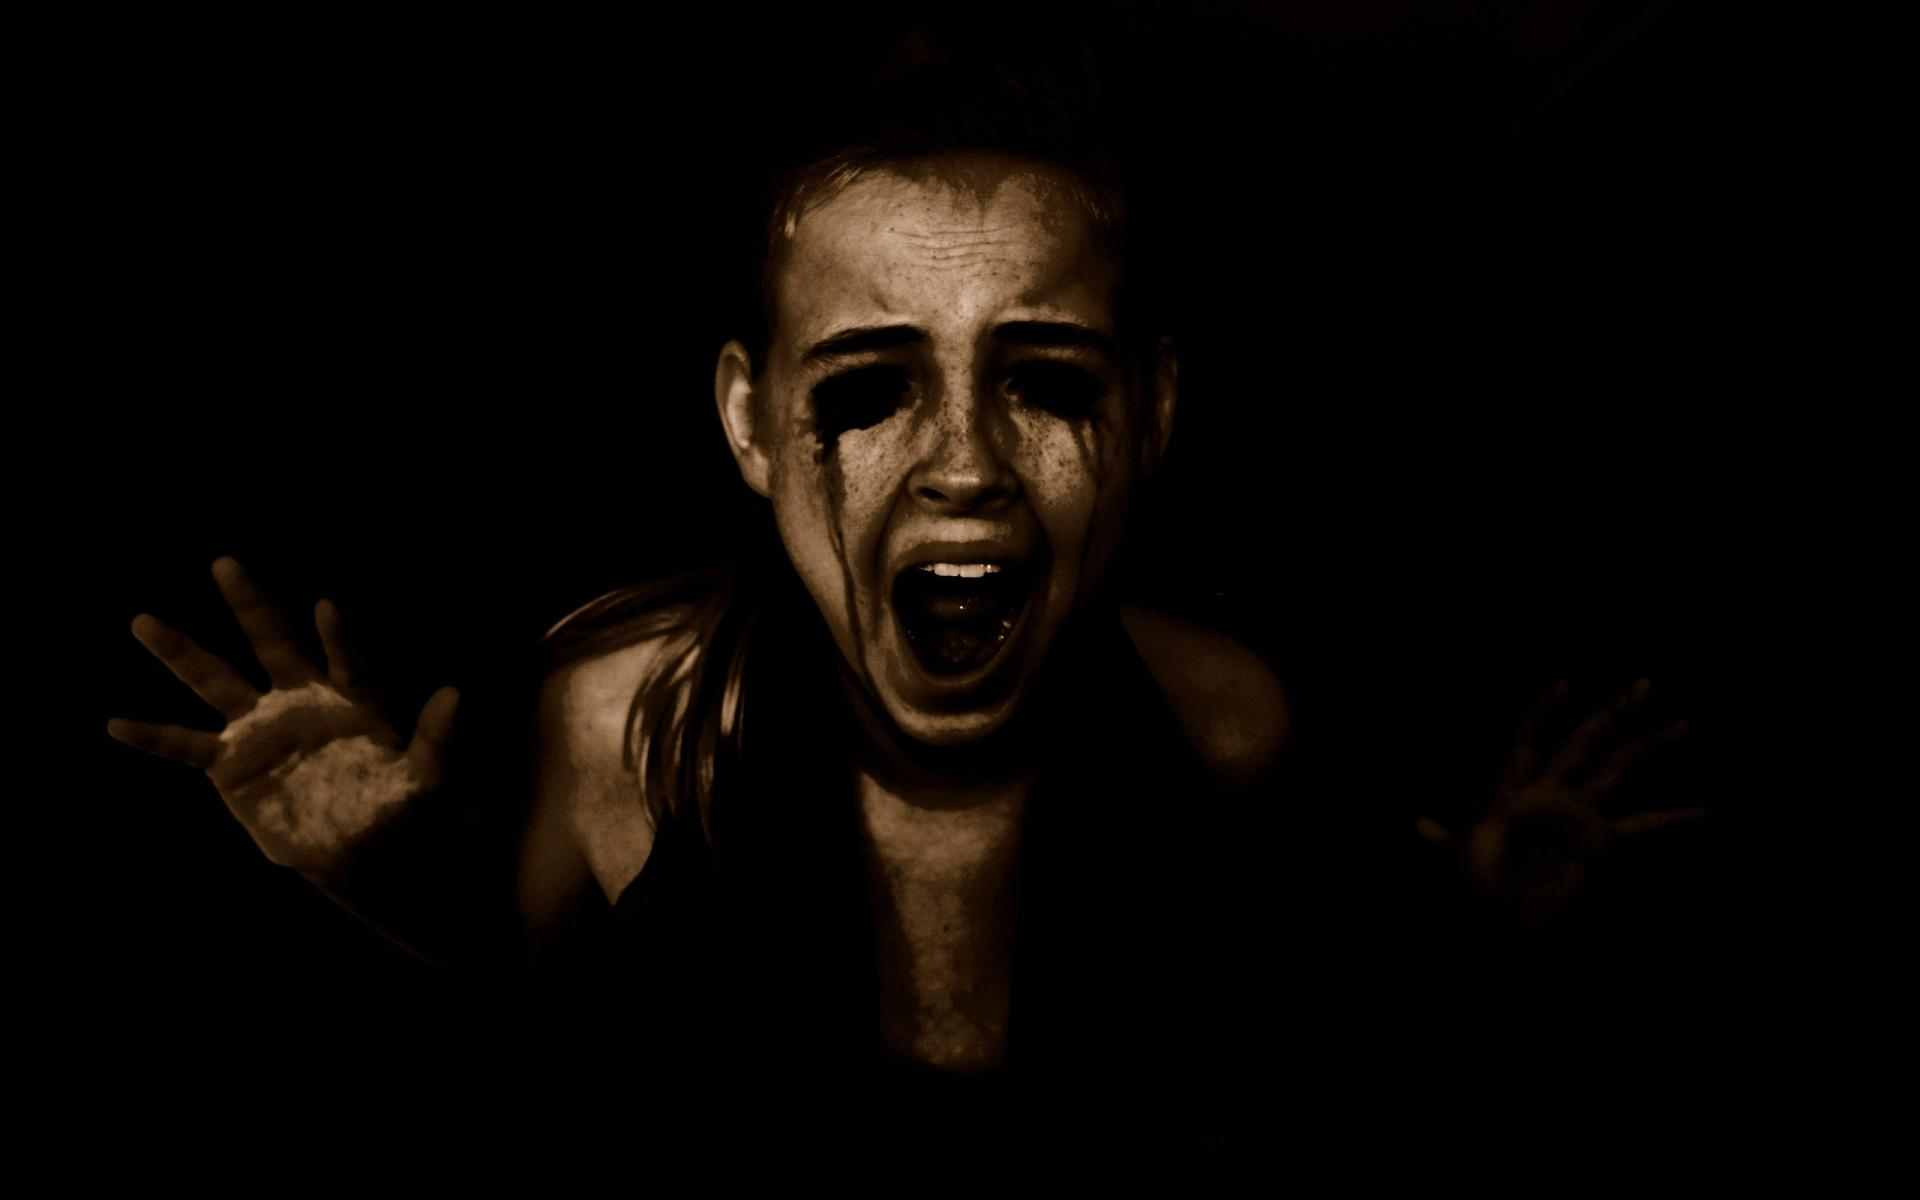 dark-horror-evil-scary-creepy-spooky-halloween-women-girls-blood-demons-face-mood-scream-emotion.jpg